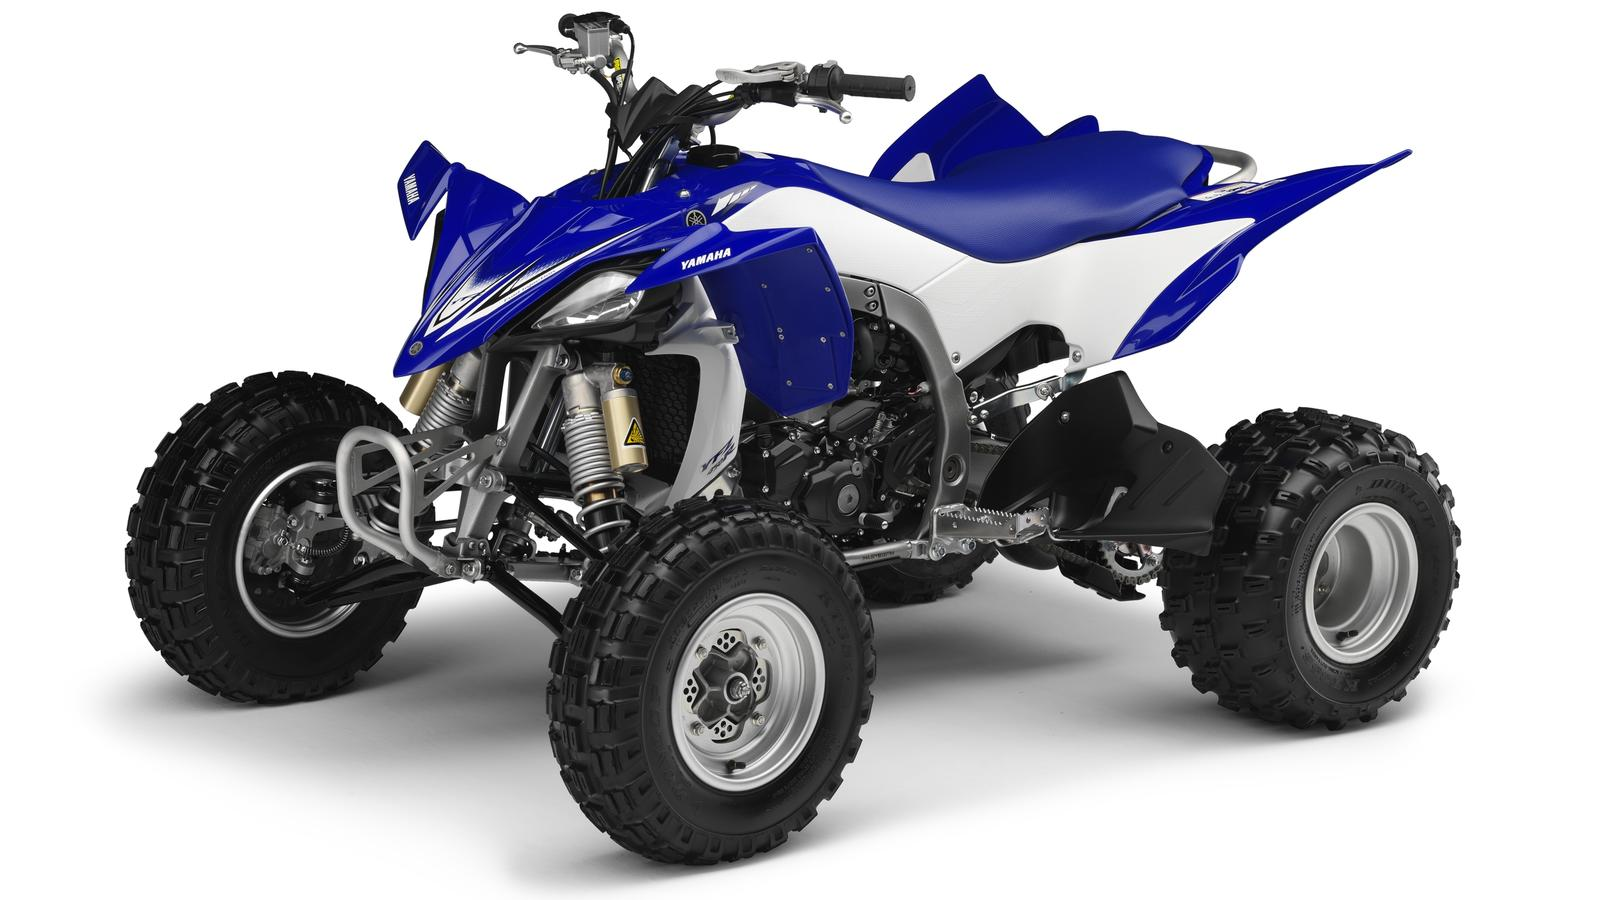 fiche revue technique yamaha yfz 450 r 2011. Black Bedroom Furniture Sets. Home Design Ideas